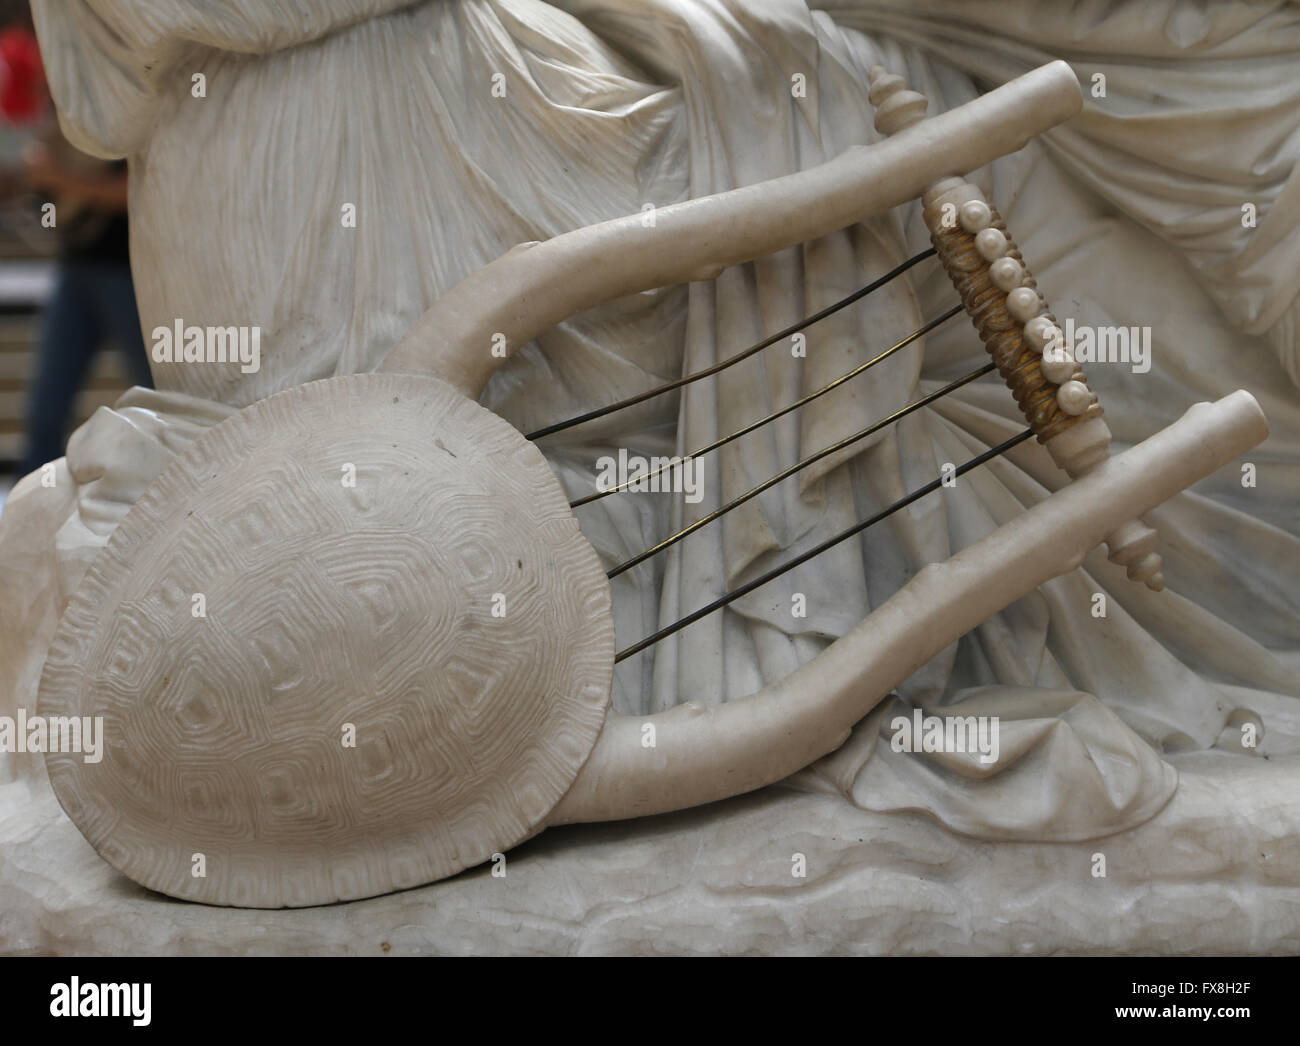 Poetess Sappho, 1852. Marble statue by James Pradier (1790-1852). Detail of lyre. Orsay Museum. Paris. France. - Stock Image